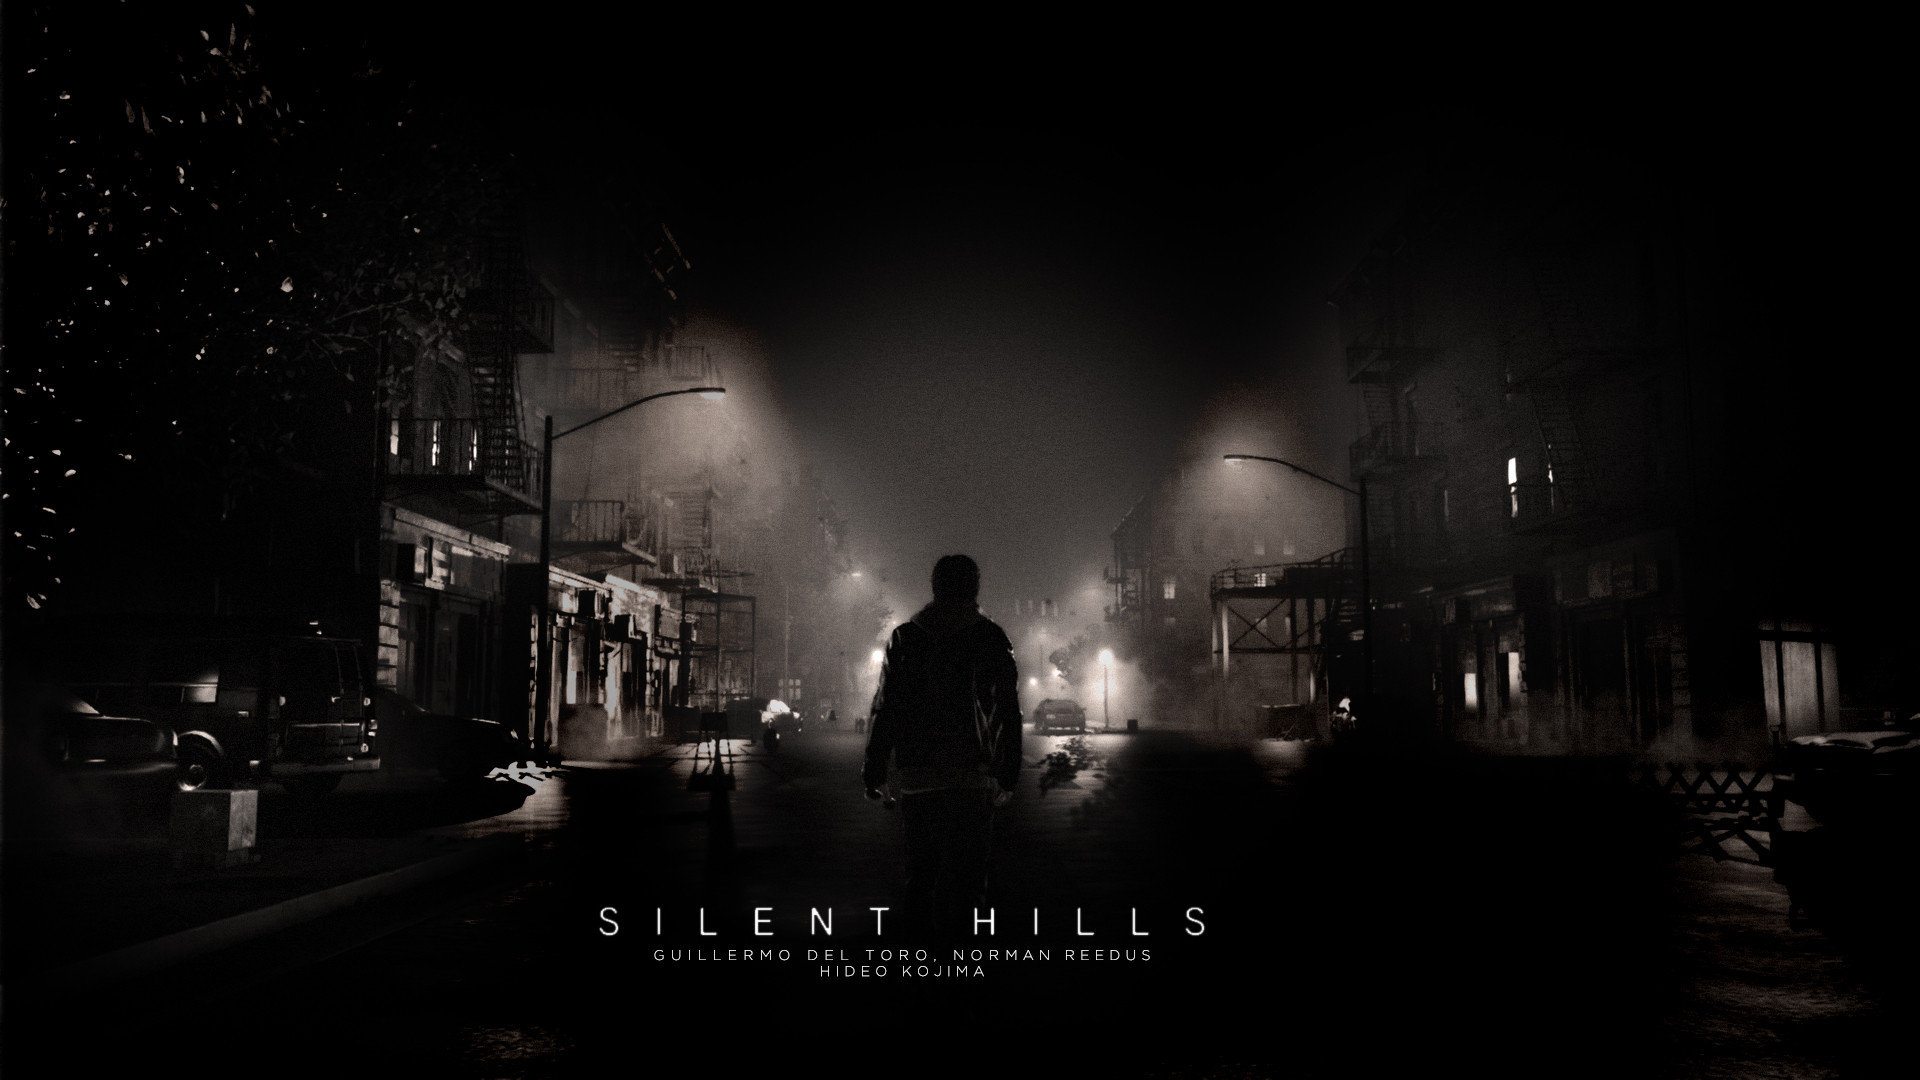 1920x1080 - Silent Hill HD Wallpapers 12